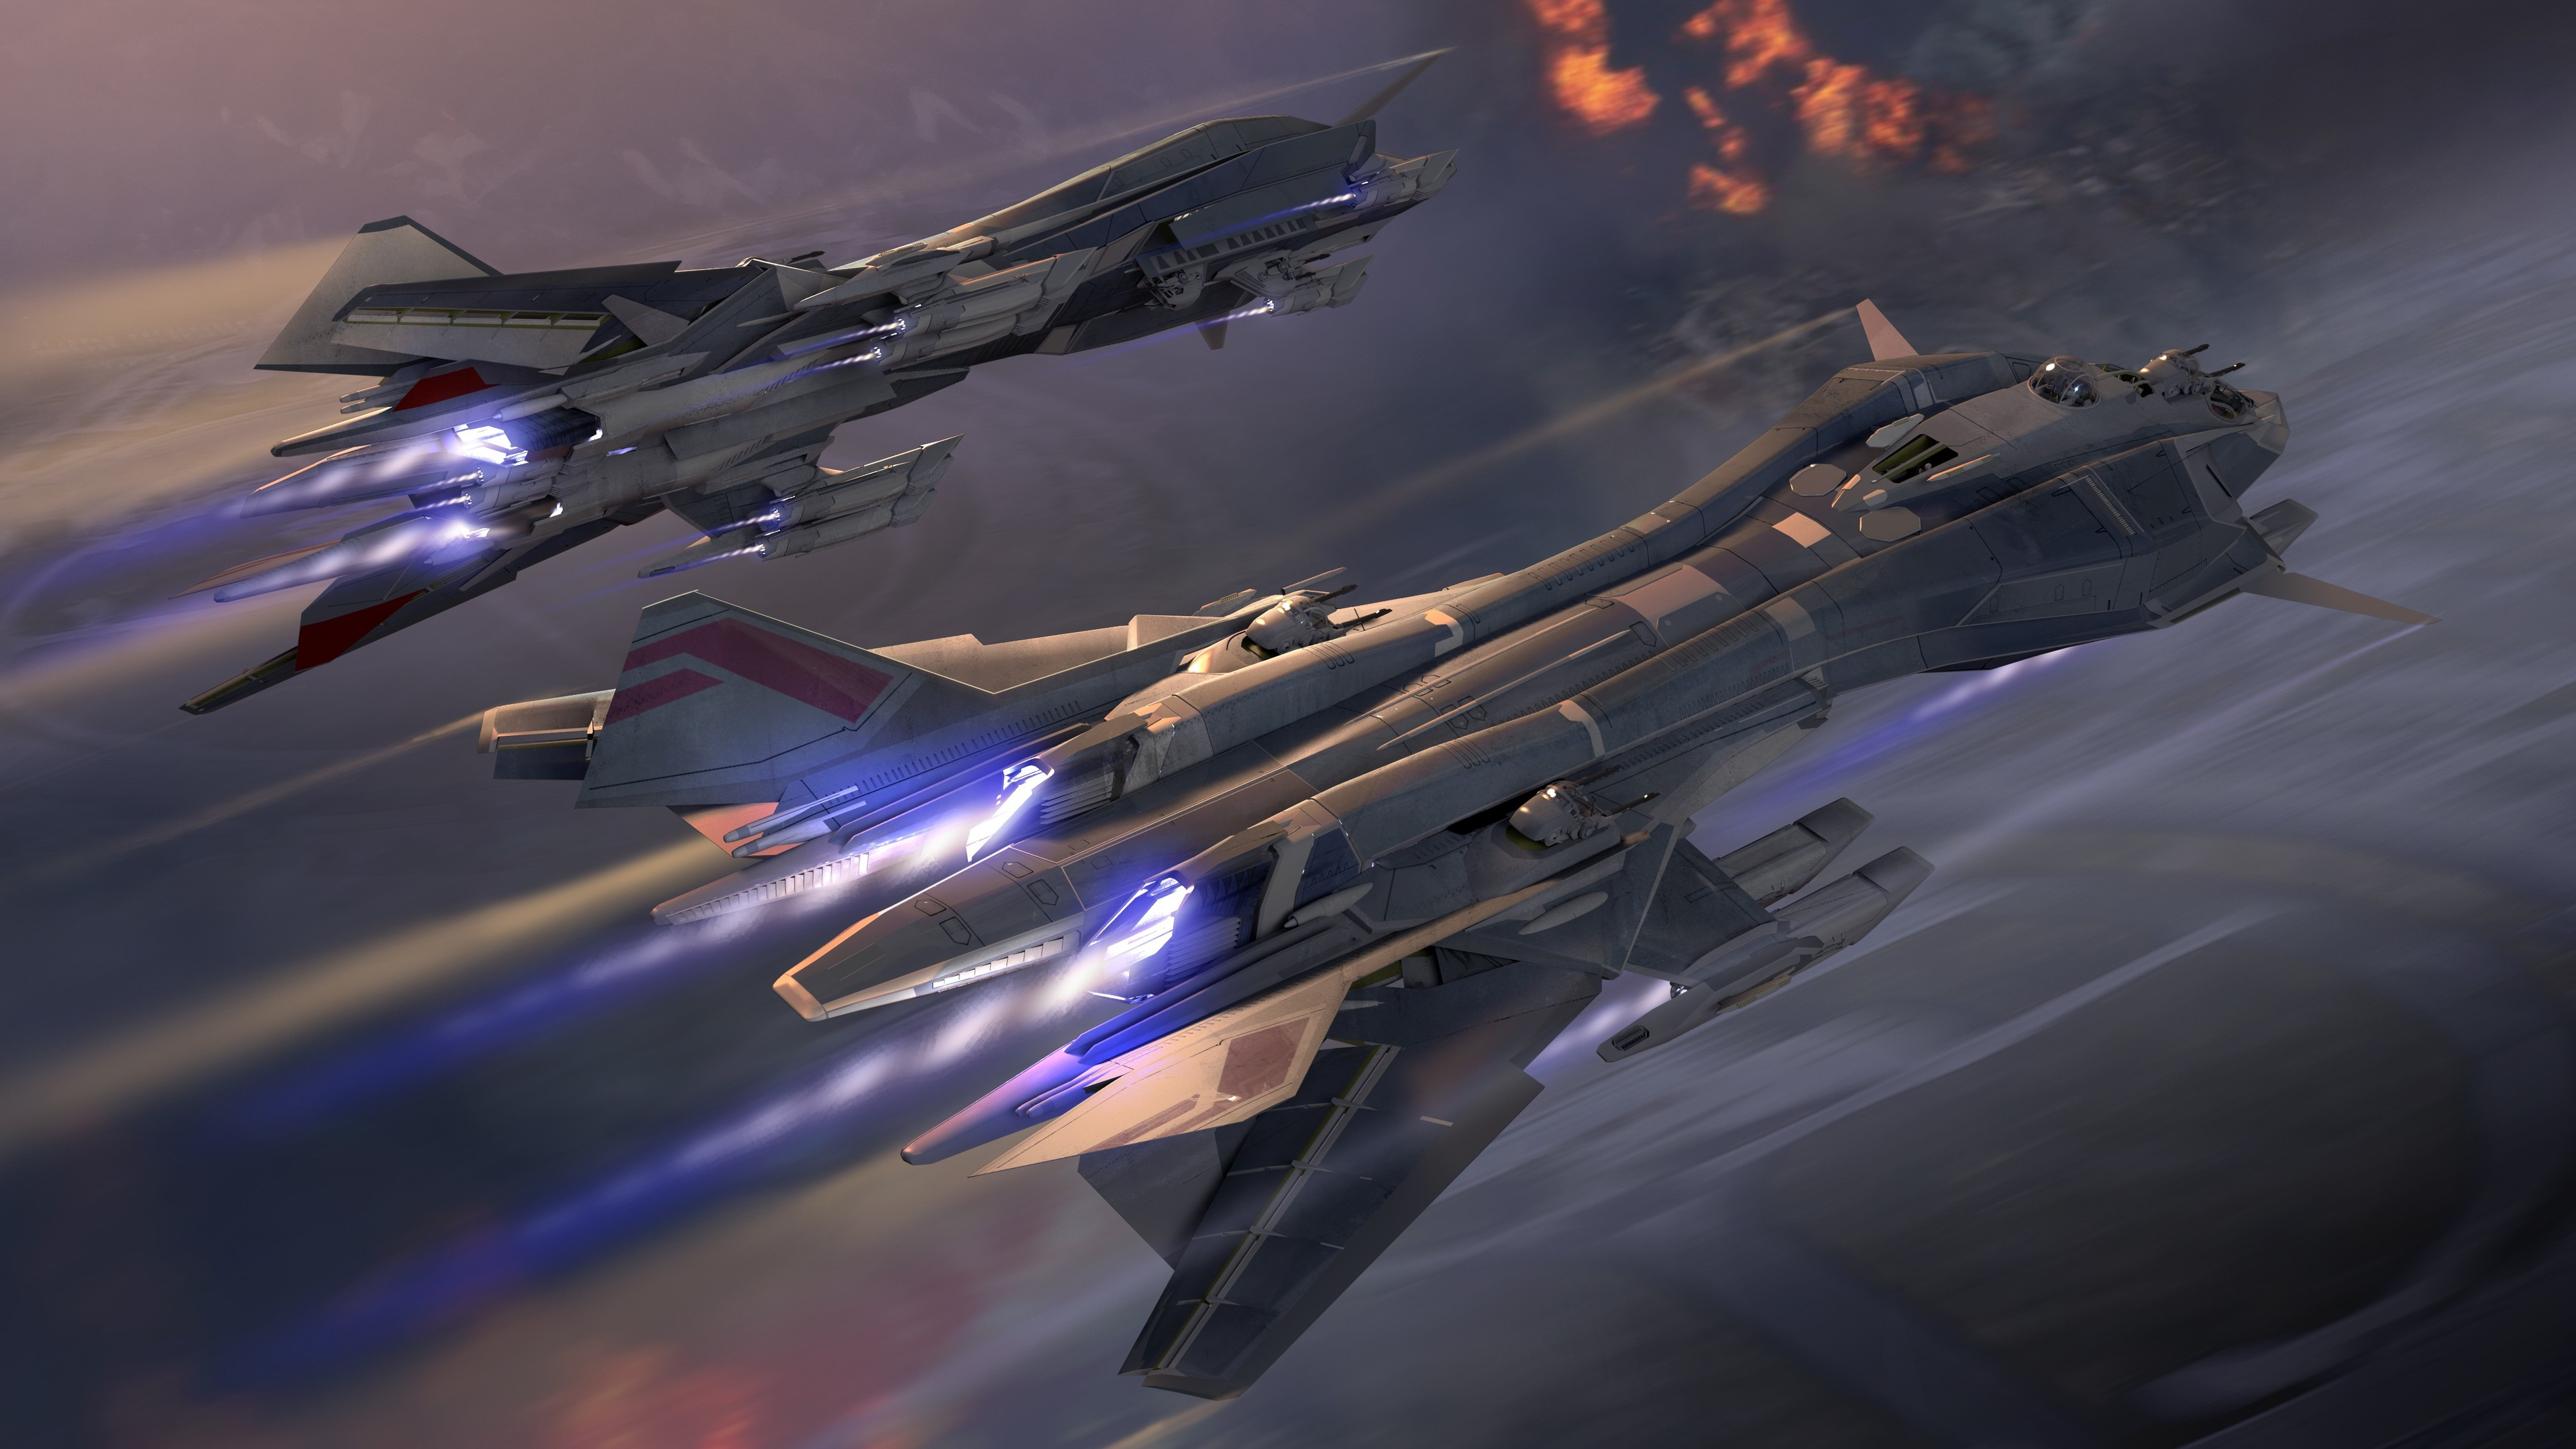 space ships in star citizen 1535967780 - Space Ships In Star Citizen - star citizen wallpapers, pc games wallpapers, games wallpapers